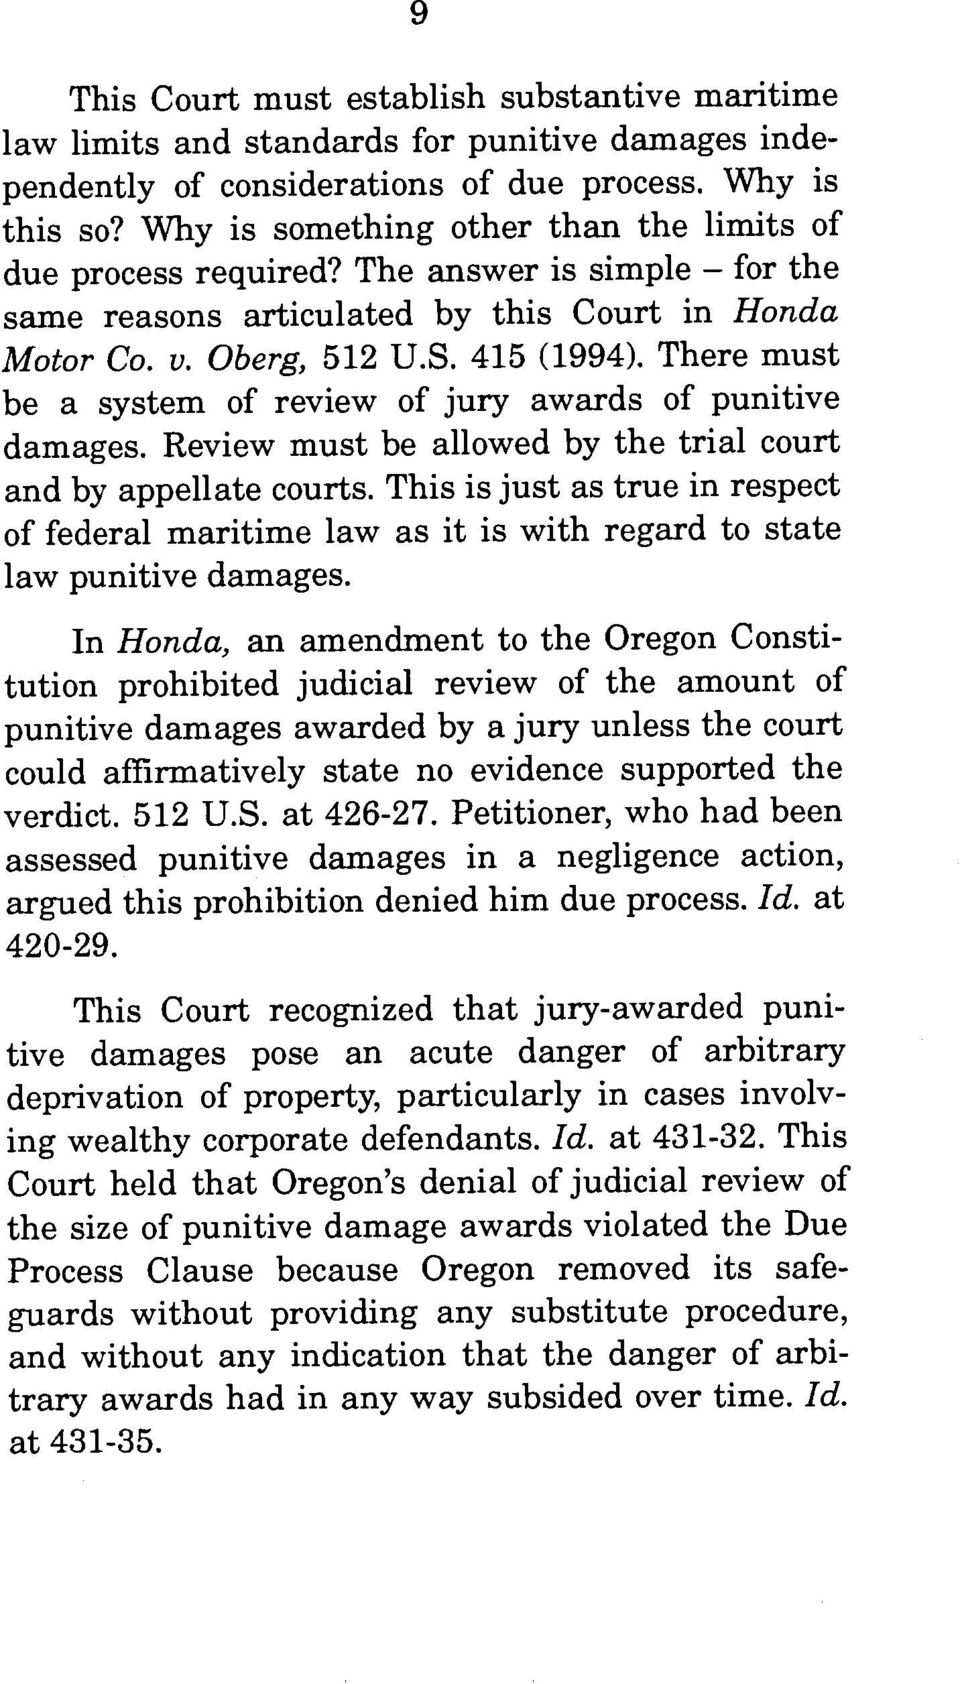 There must be a system of review of jury awards of punitive damages. Review must be allowed by the trial court and by appellate courts.